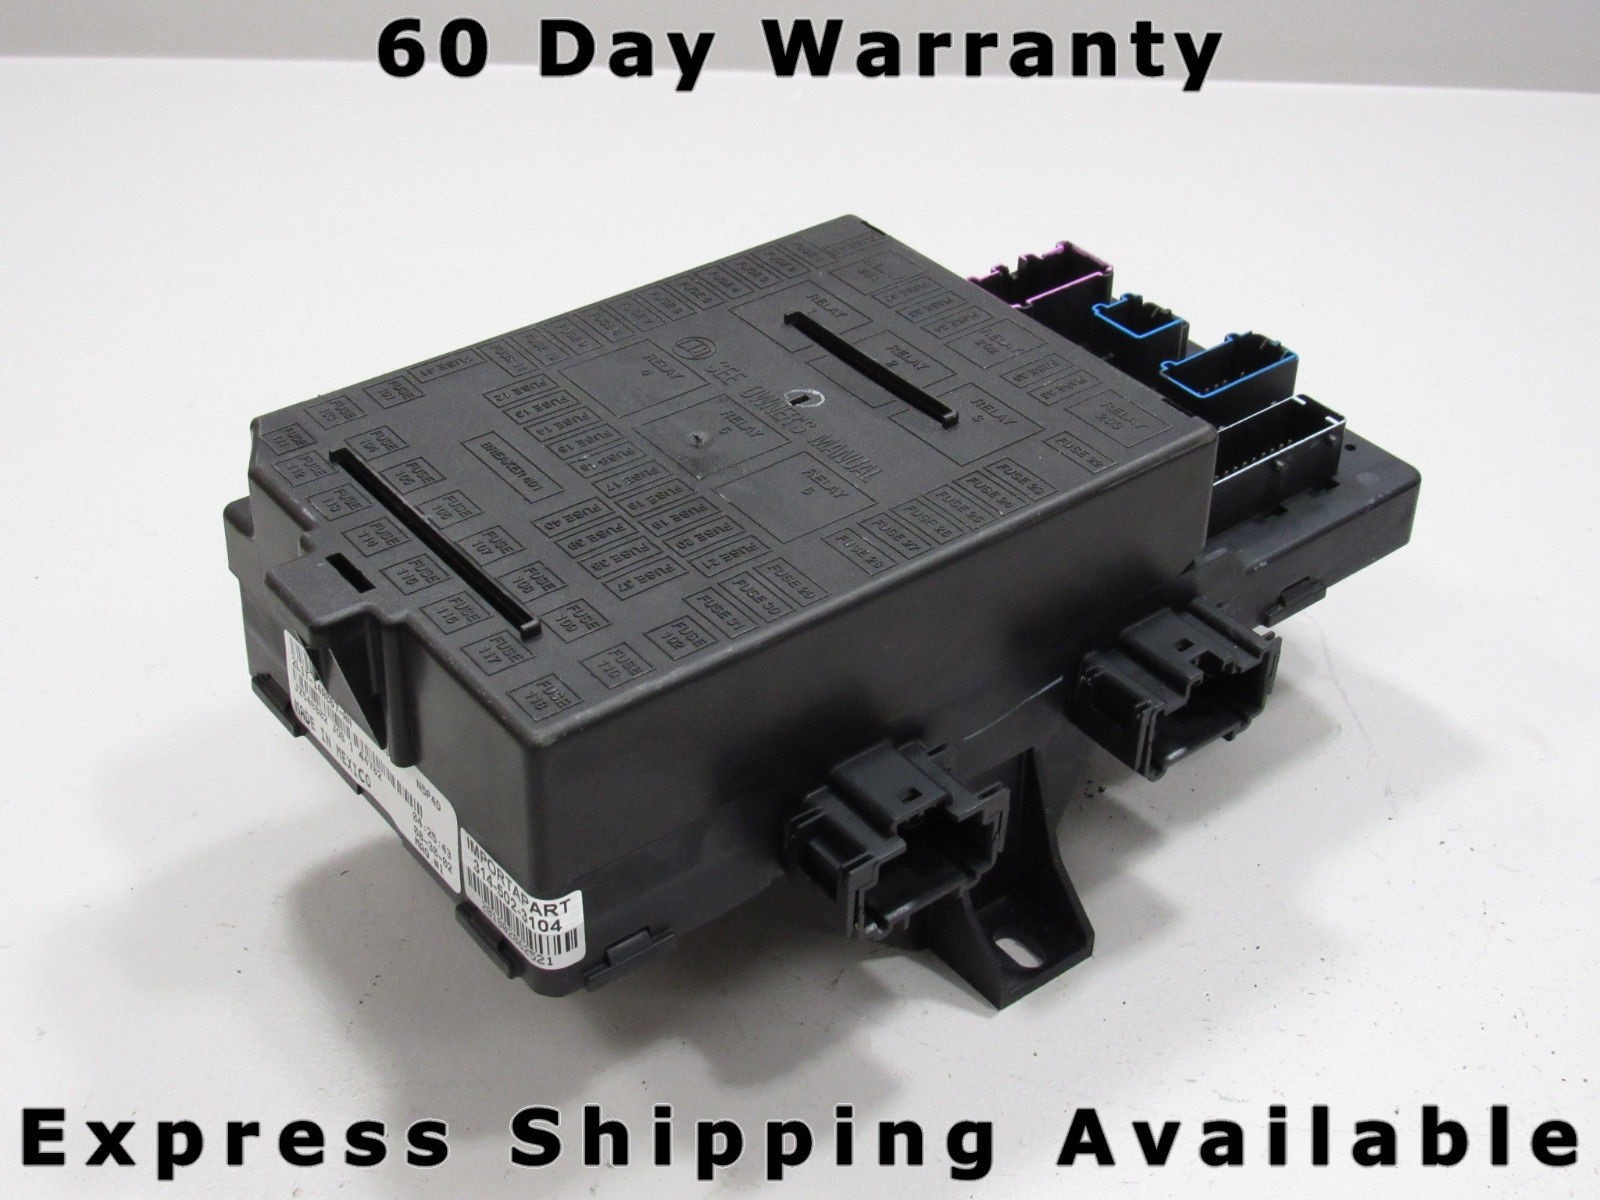 03 expedition navigator interior fuse relay box block center 2l1t-14a067-an  dg